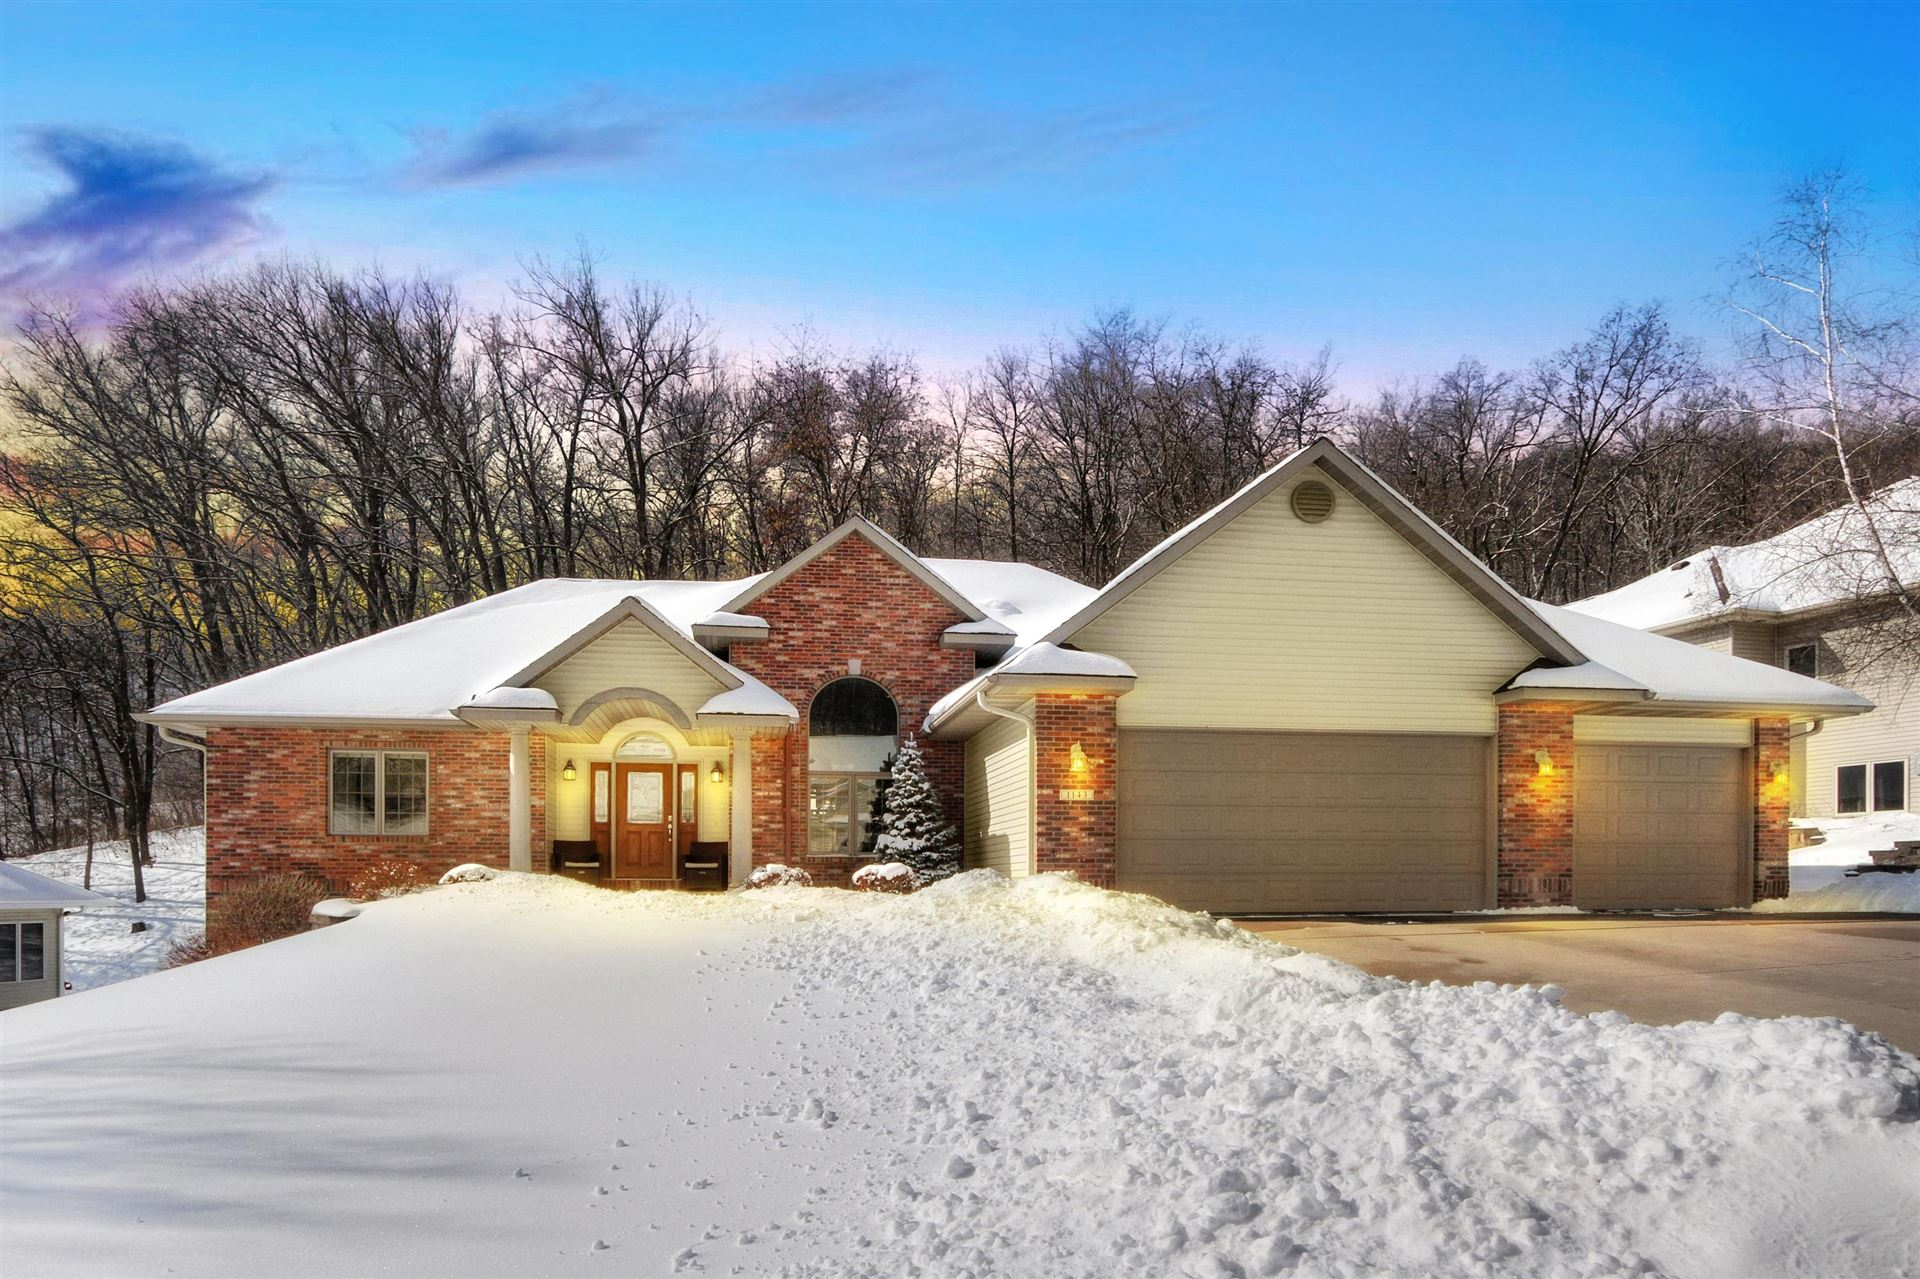 1143 Aspen Valley Dr, Onalaska, WI 54650 - MLS#: 1728419